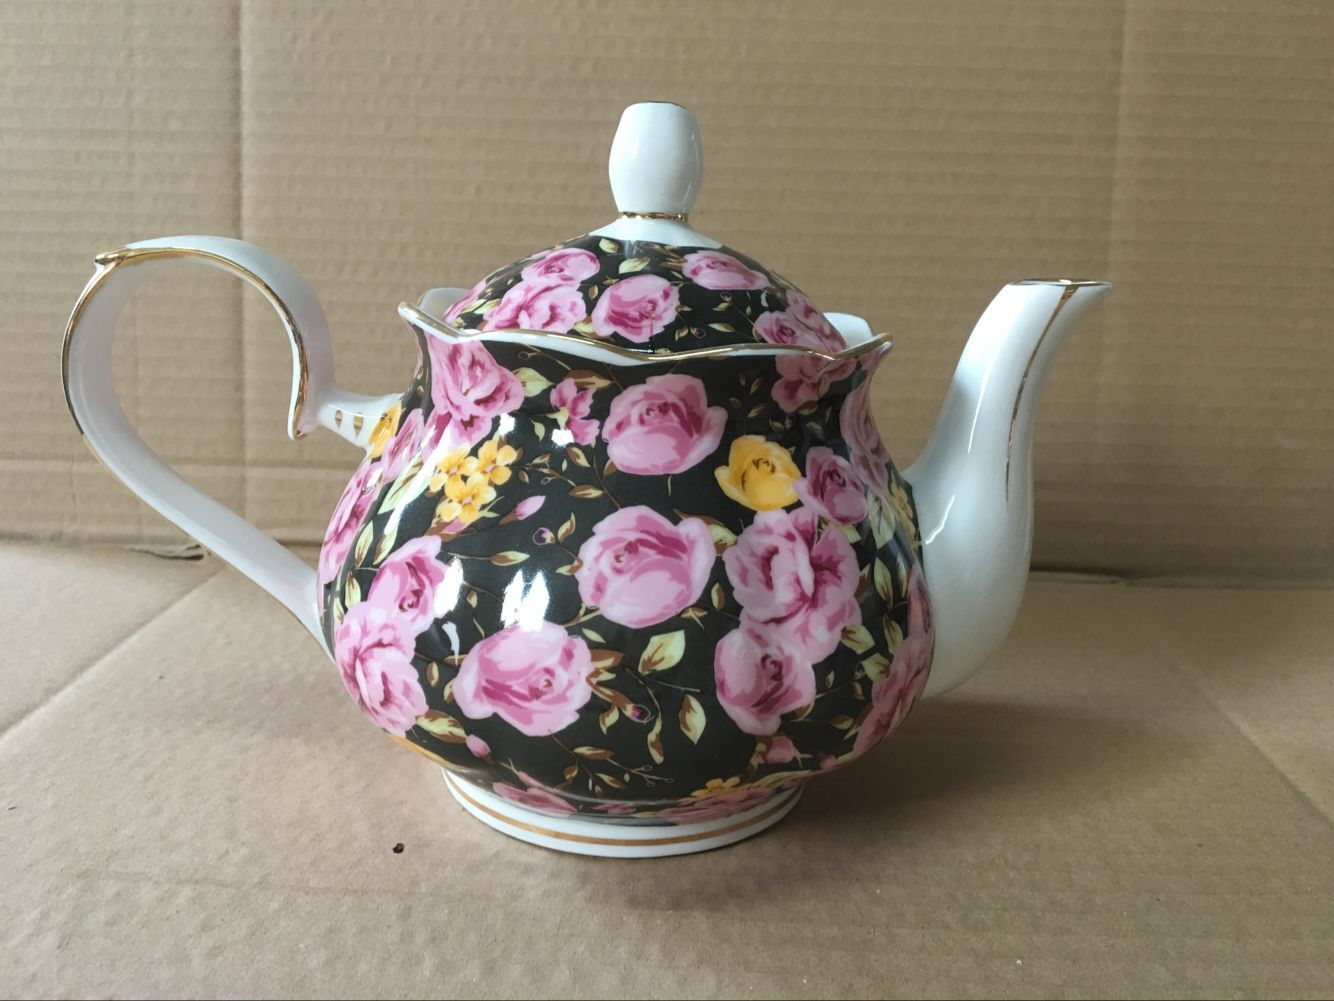 Midnight Rose Garden 4 cup teapot